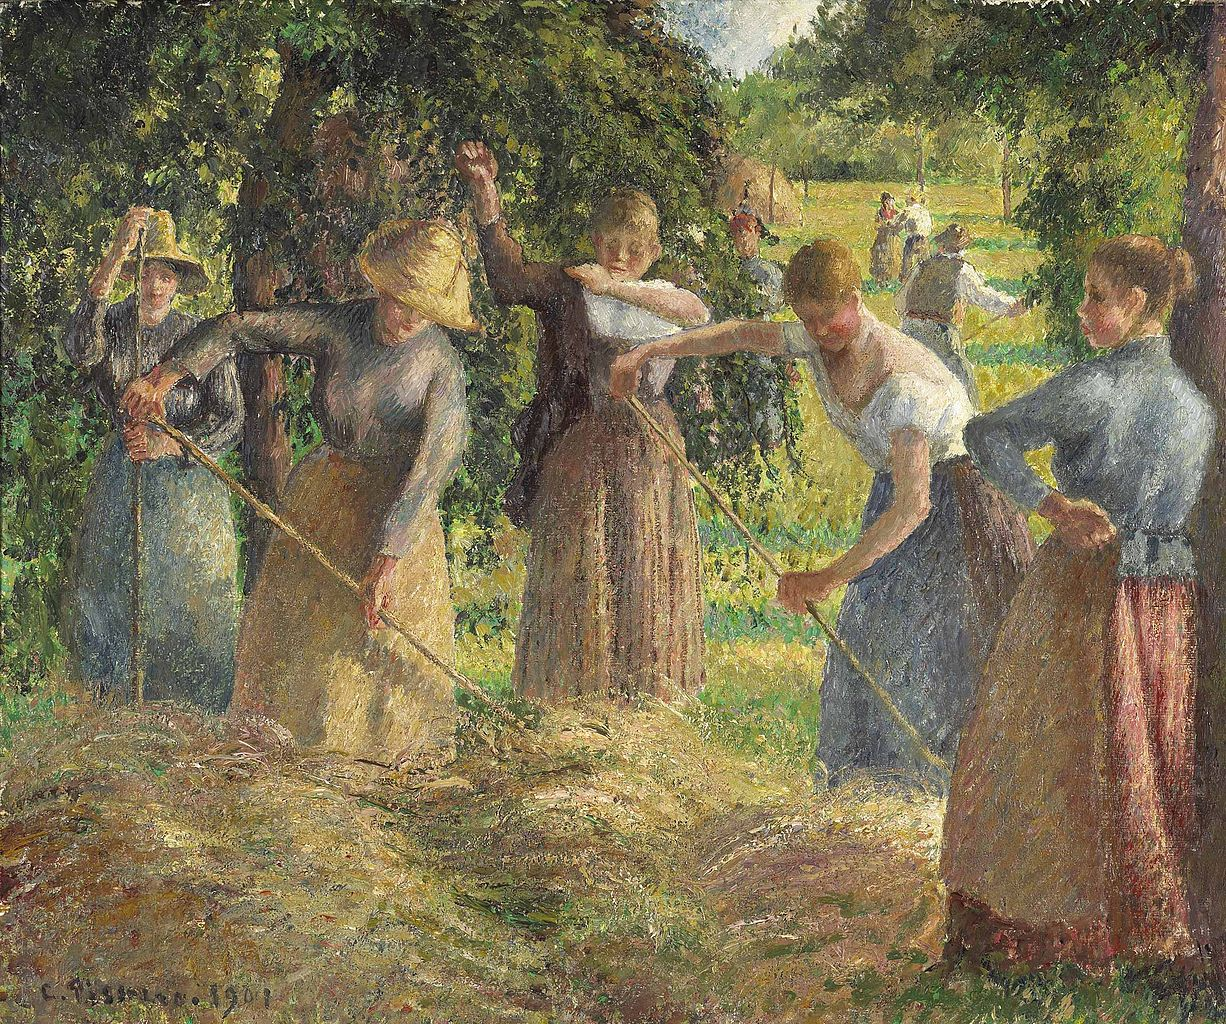 Camille Pissarro: File:Hay Harvest At Éragny, 1901, Camille Pissarro.jpg